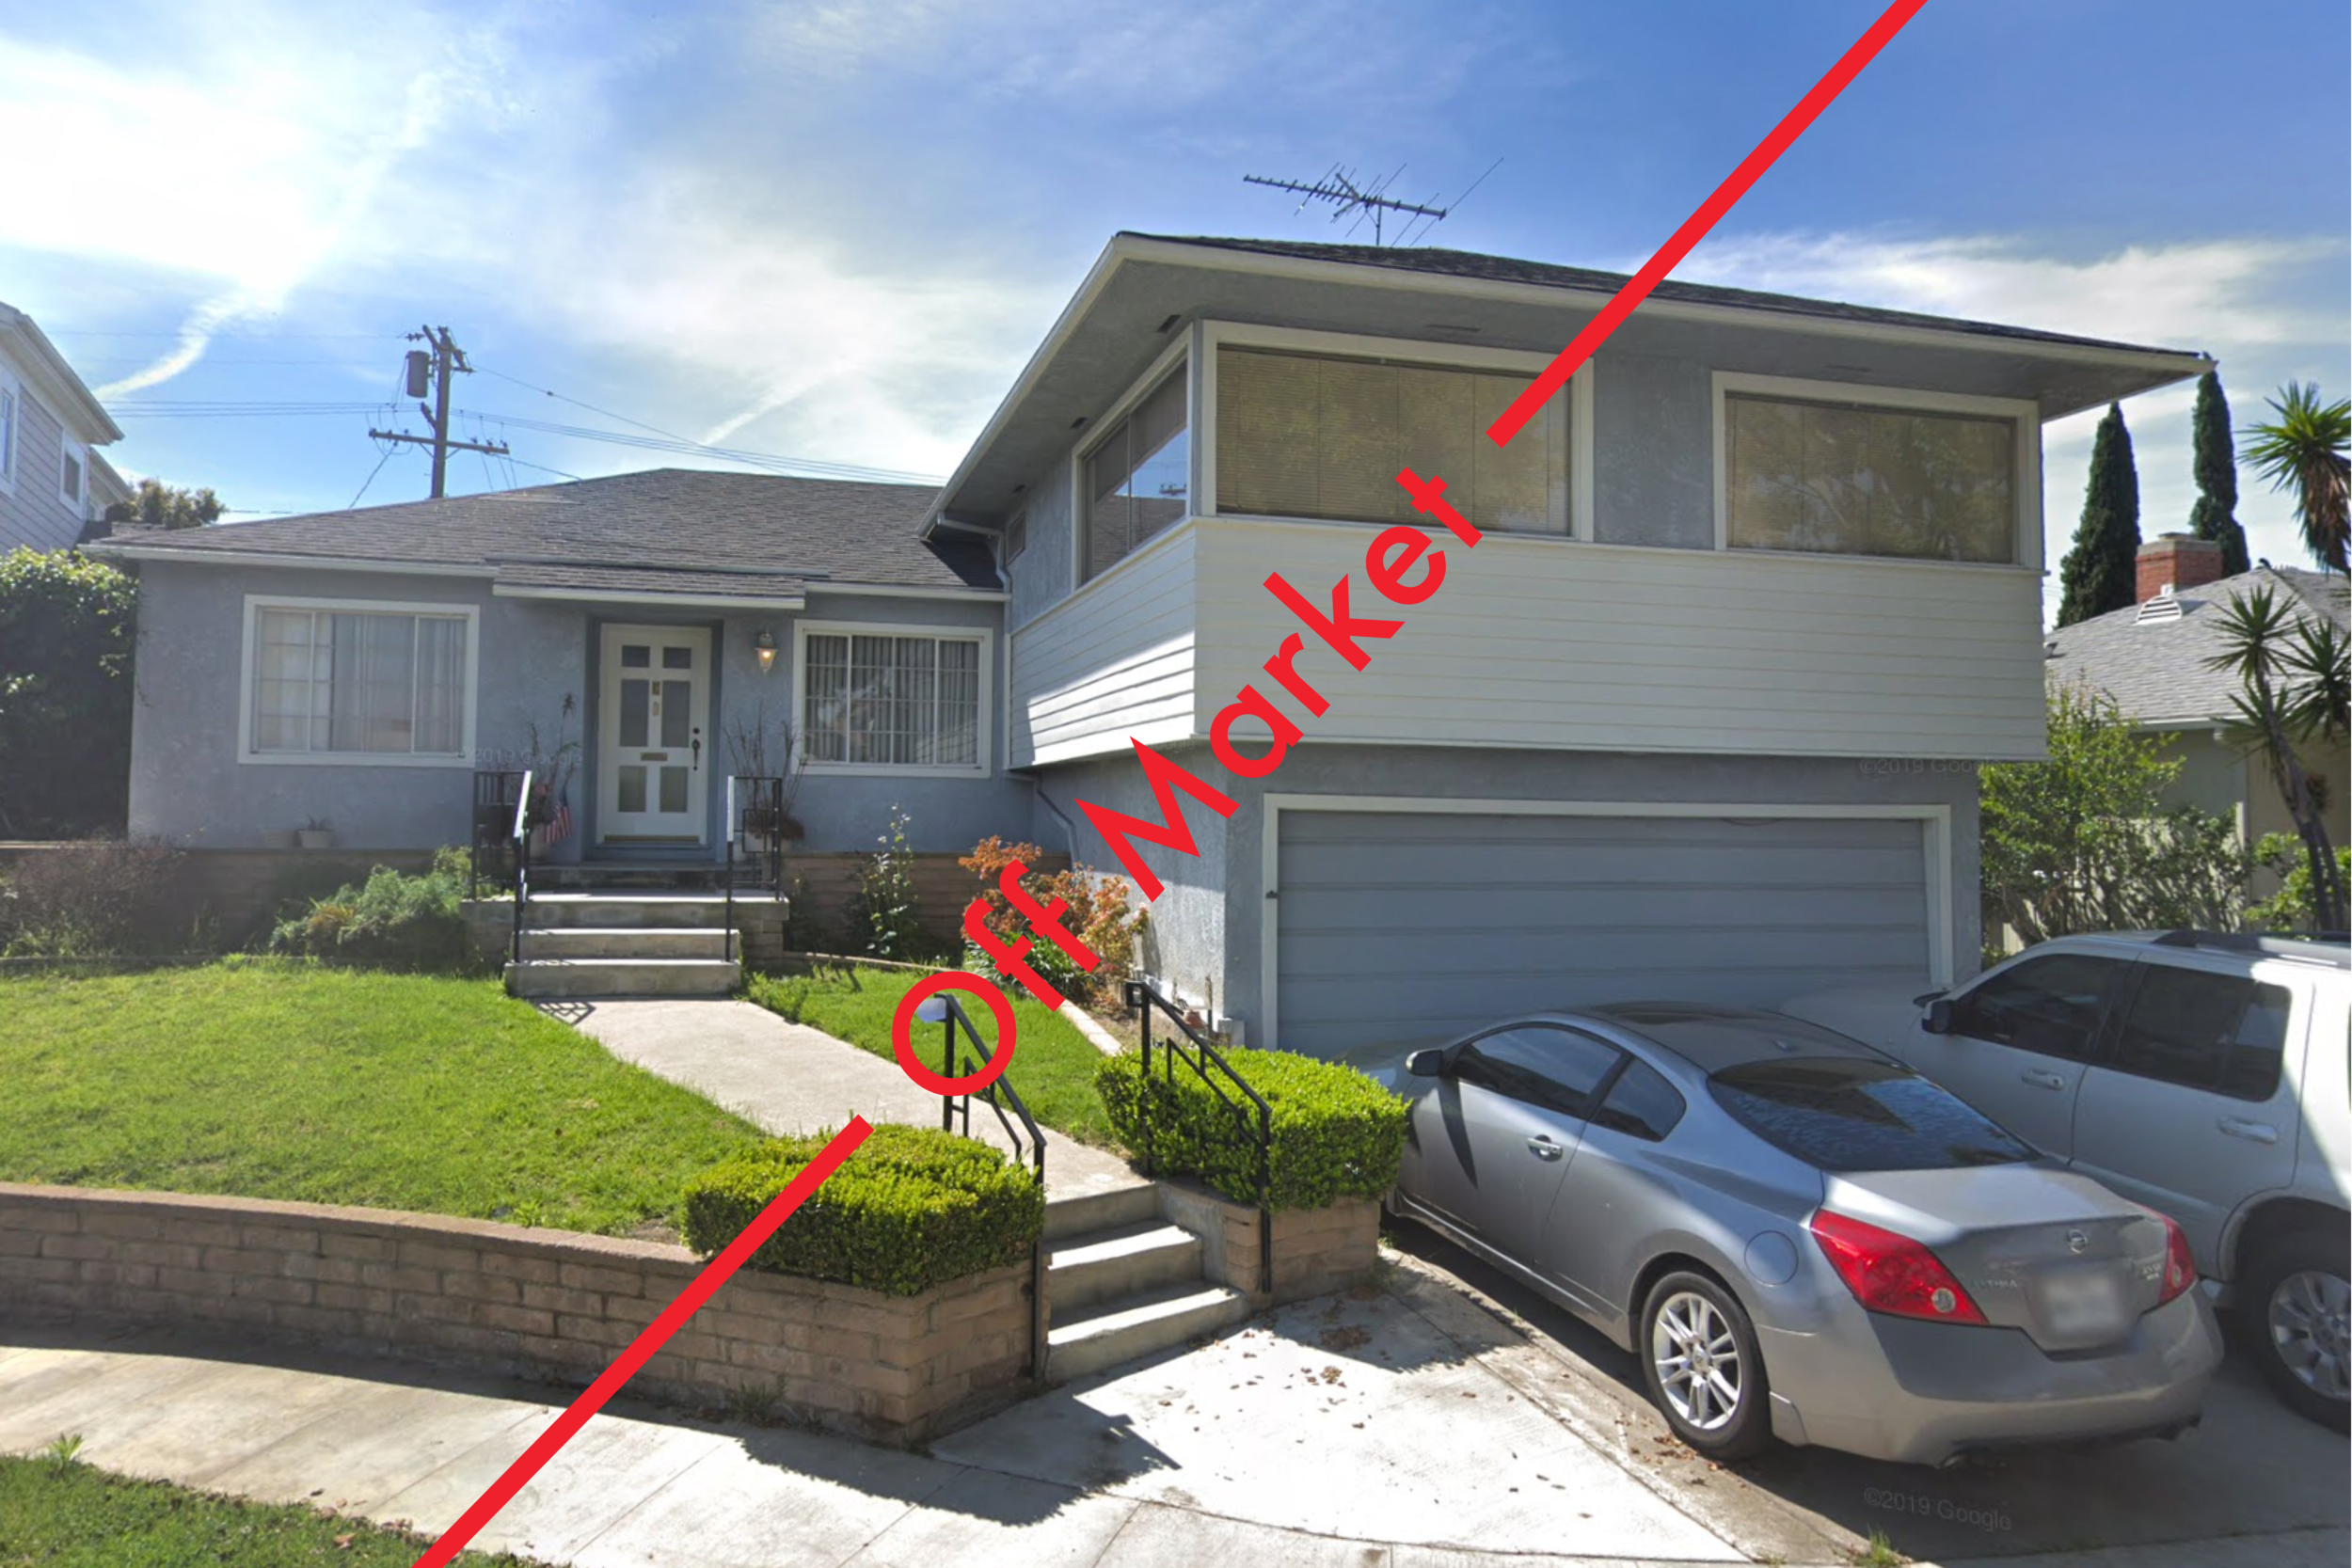 Mar Vista Flipping - Off Market Flipping Investment Opportunity3 Bed | 2 Bath | 1,688 Sq.Ft. | 5,349 Sq.Ft. LotDetails upon request.+1 424 231-0870 | contact@fromparistola.net